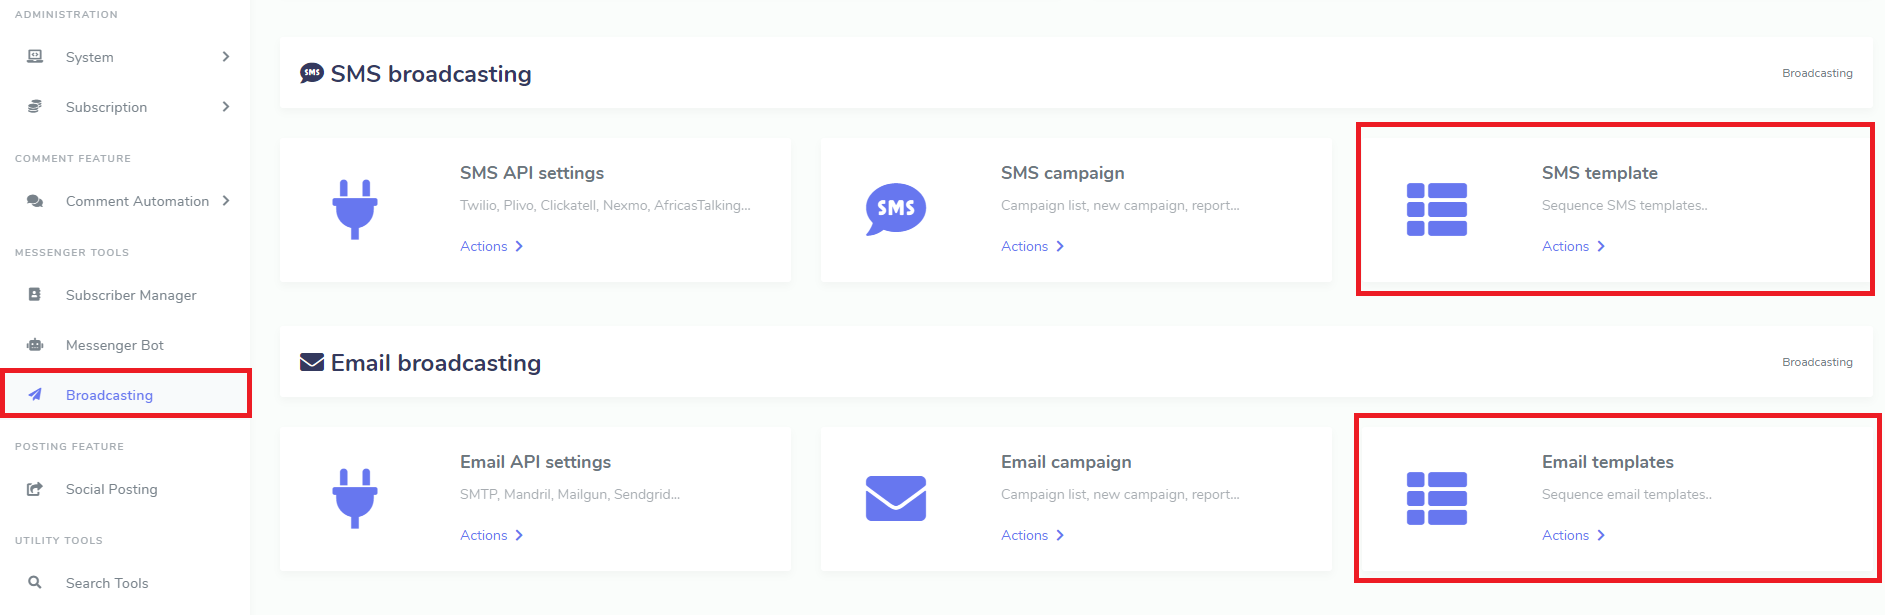 EMAIL & SMS SEQUENCE CAMPAIGNER : A XEROCHAT ADD-ON 1.2.1